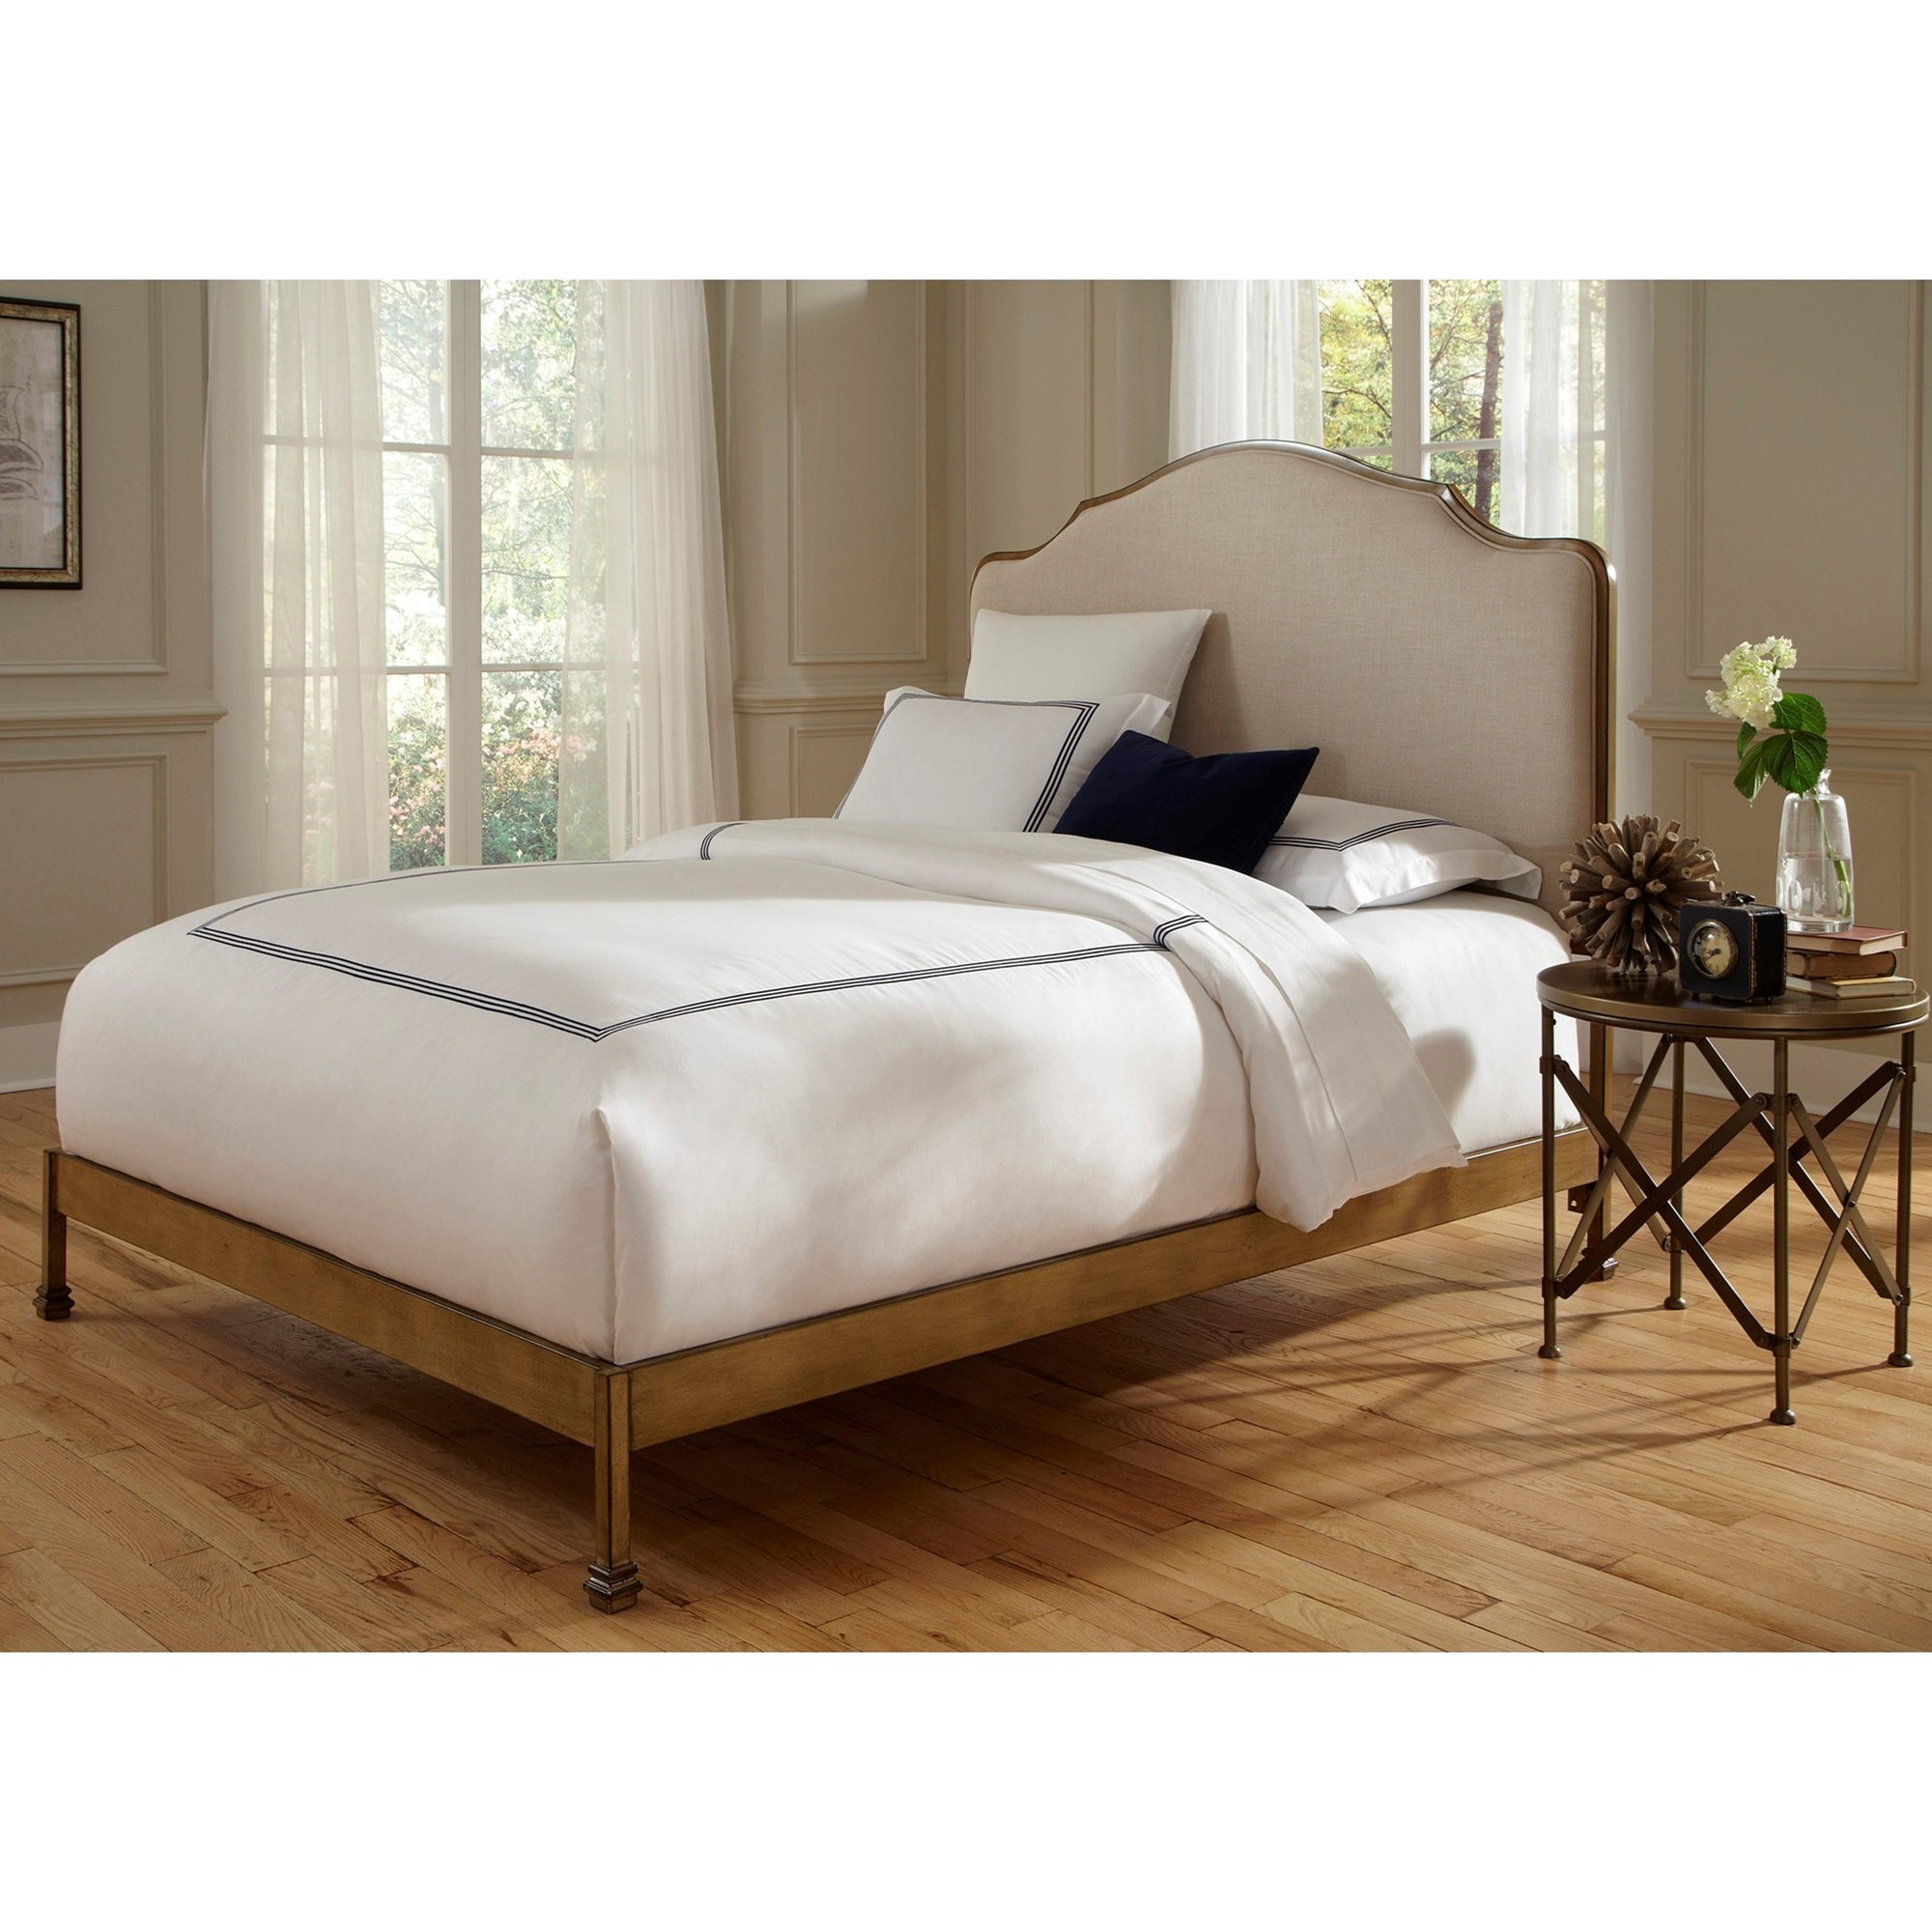 Fashion Bed Group Calvados Calvados King Bed With Metal Headboard And Sand  Colored Upholstery